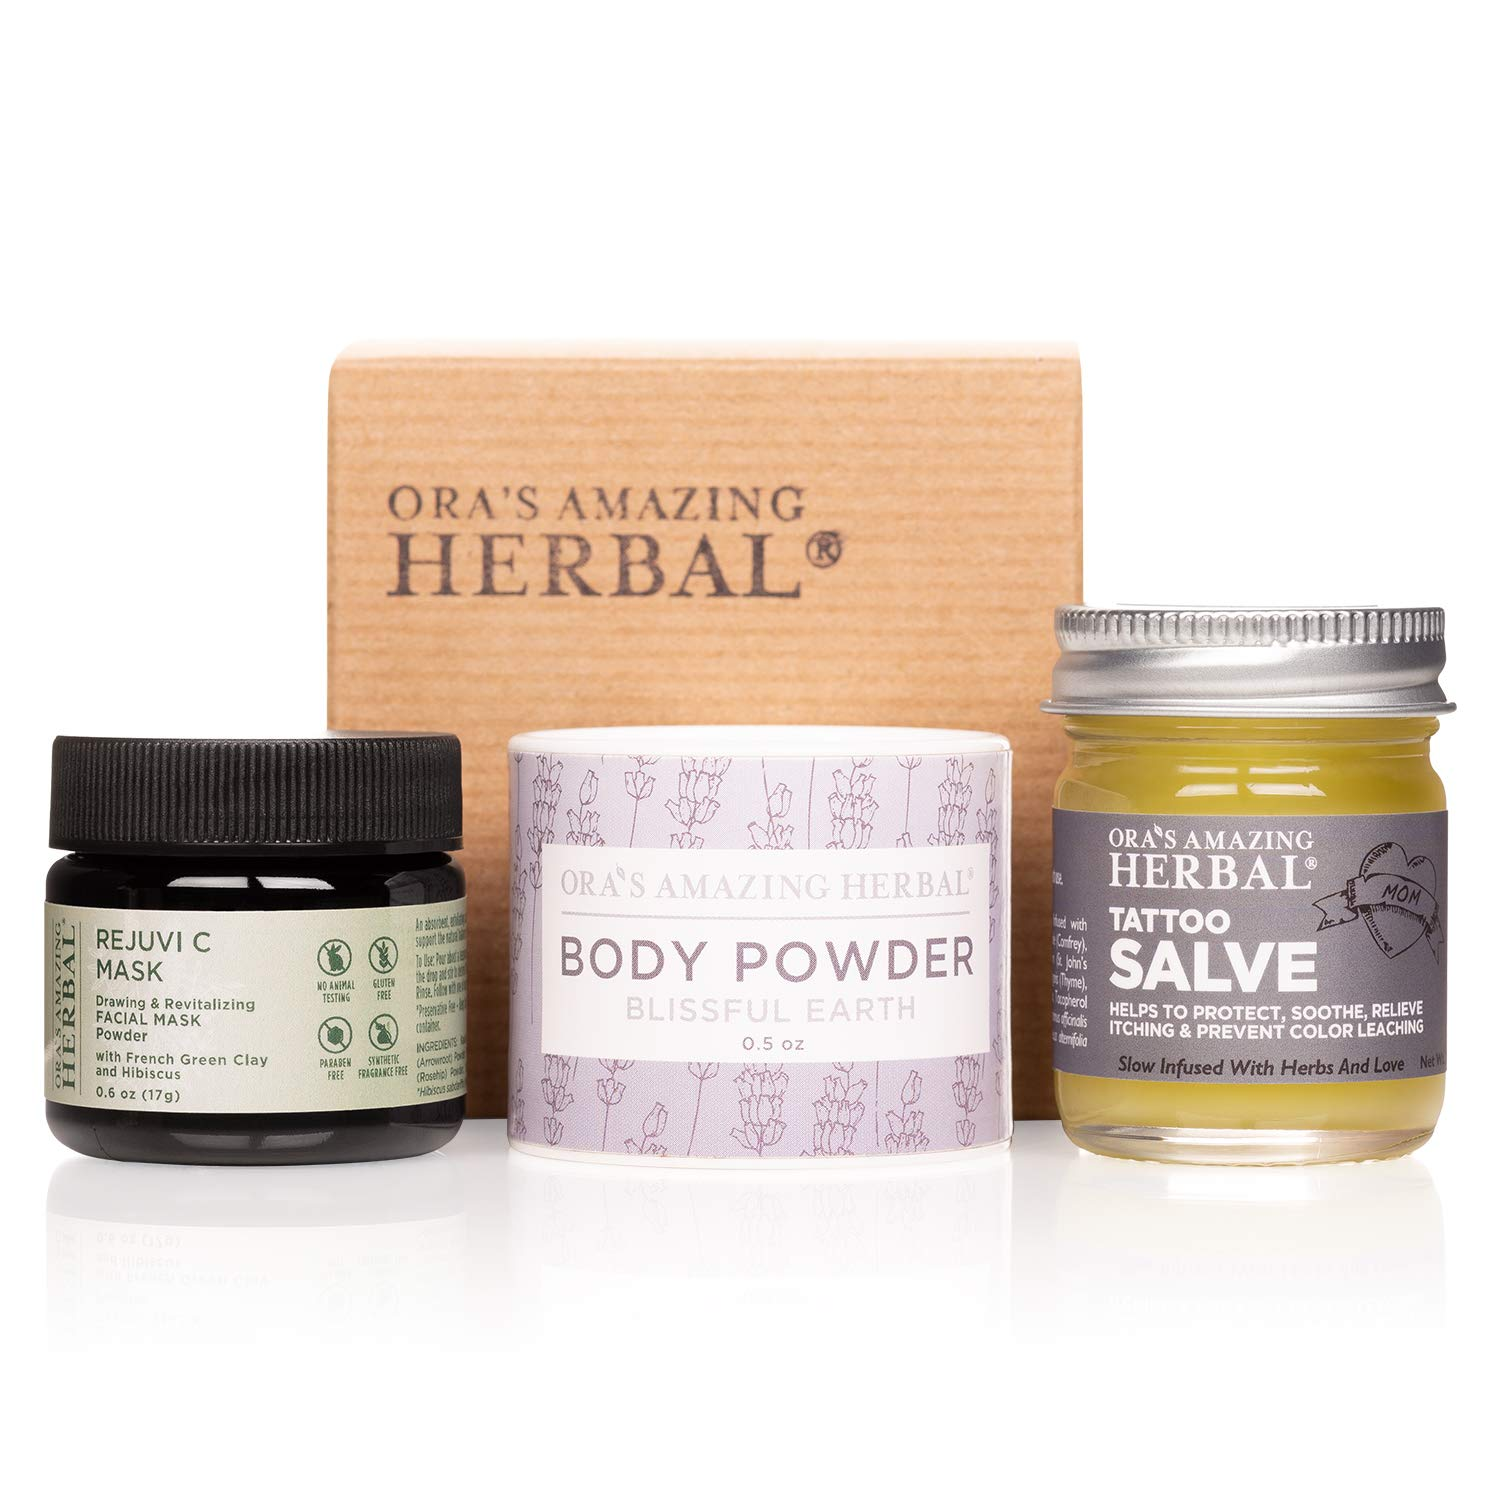 Discount mail order Max 65% OFF Natural Gift Set for People with F Salve Tattoo Travel Tattoos